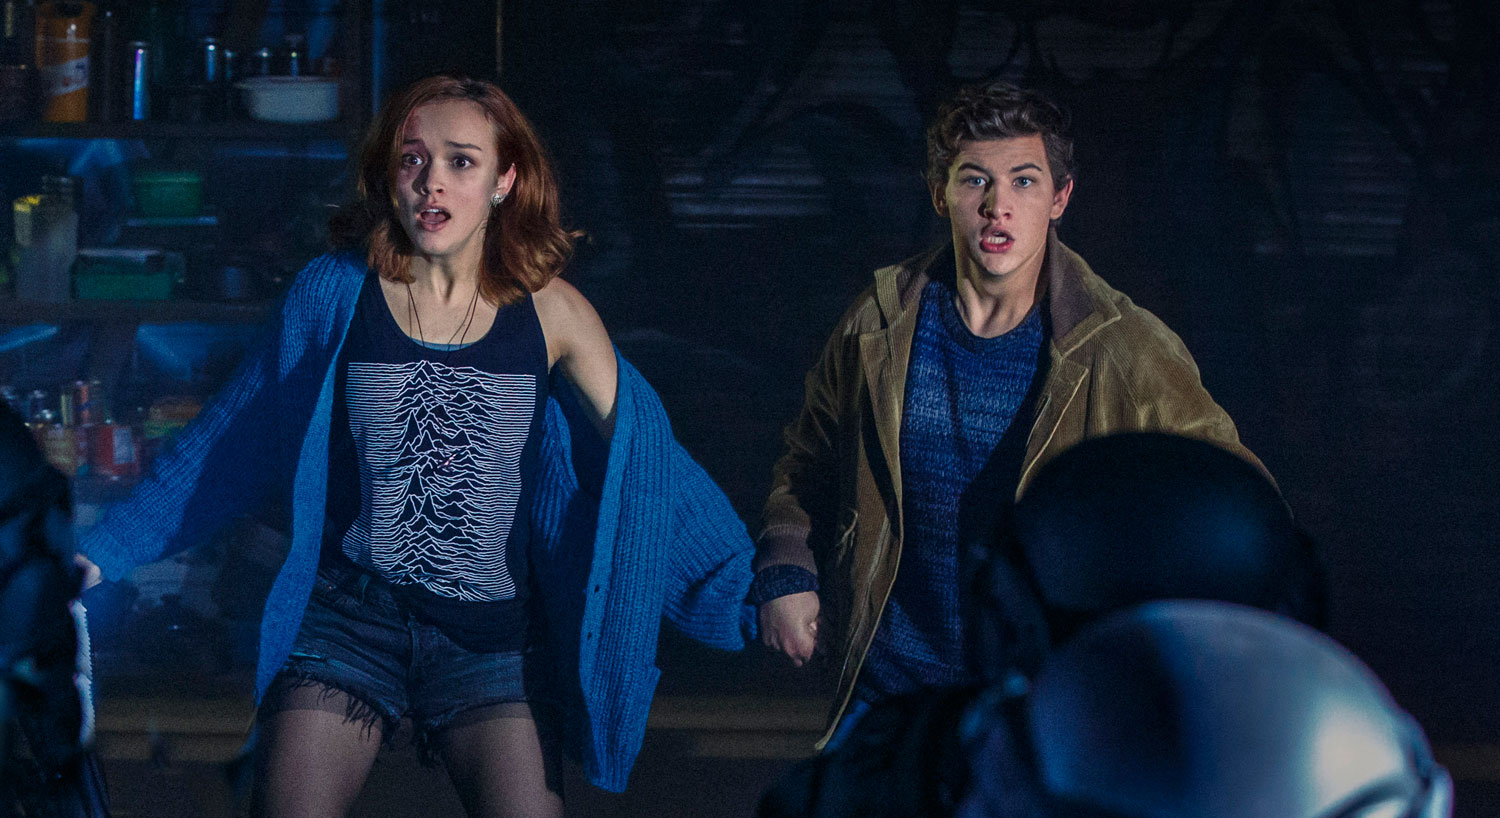 Ready Player One Movie Stills Over 60 Photos Released